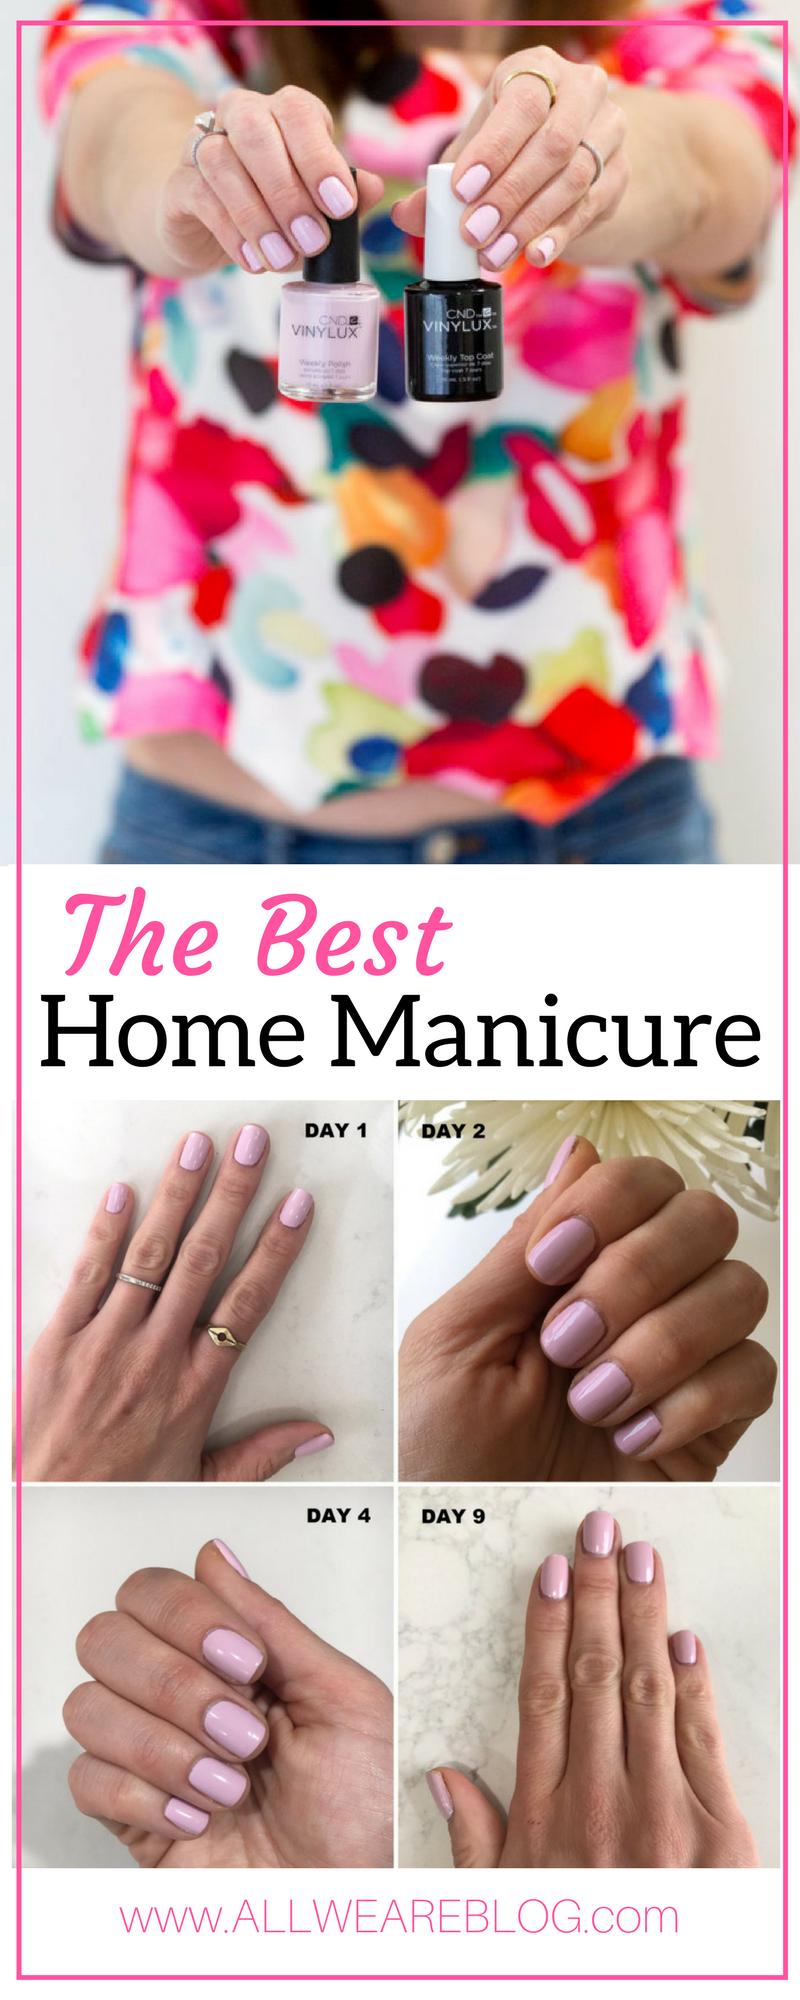 The Best Home Manicure on allweareblog.com